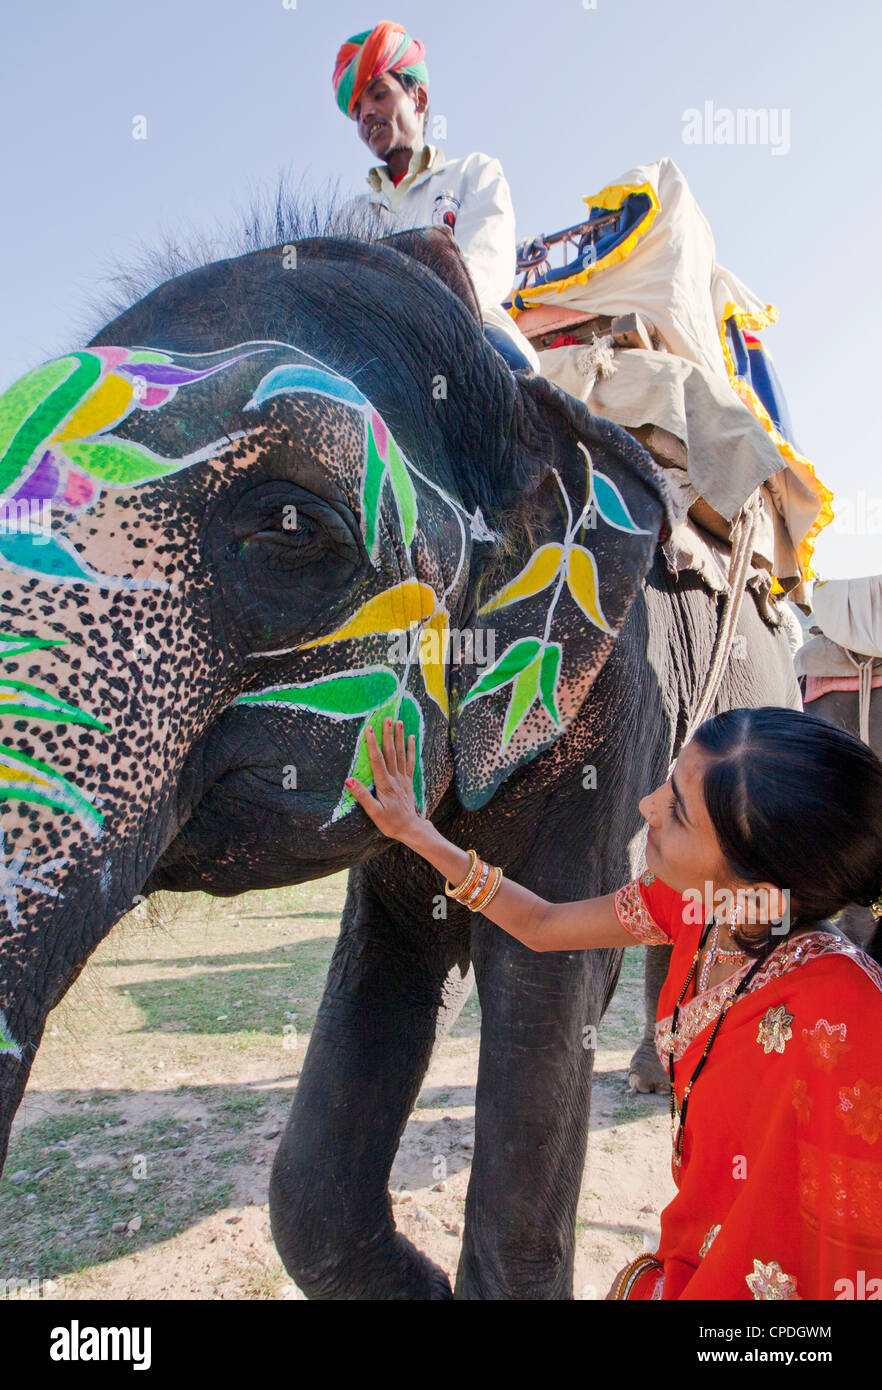 Woman in colourful sari with a painted ceremonial elephant in Jaipur, Rajasthan, India, Asia - Stock Image